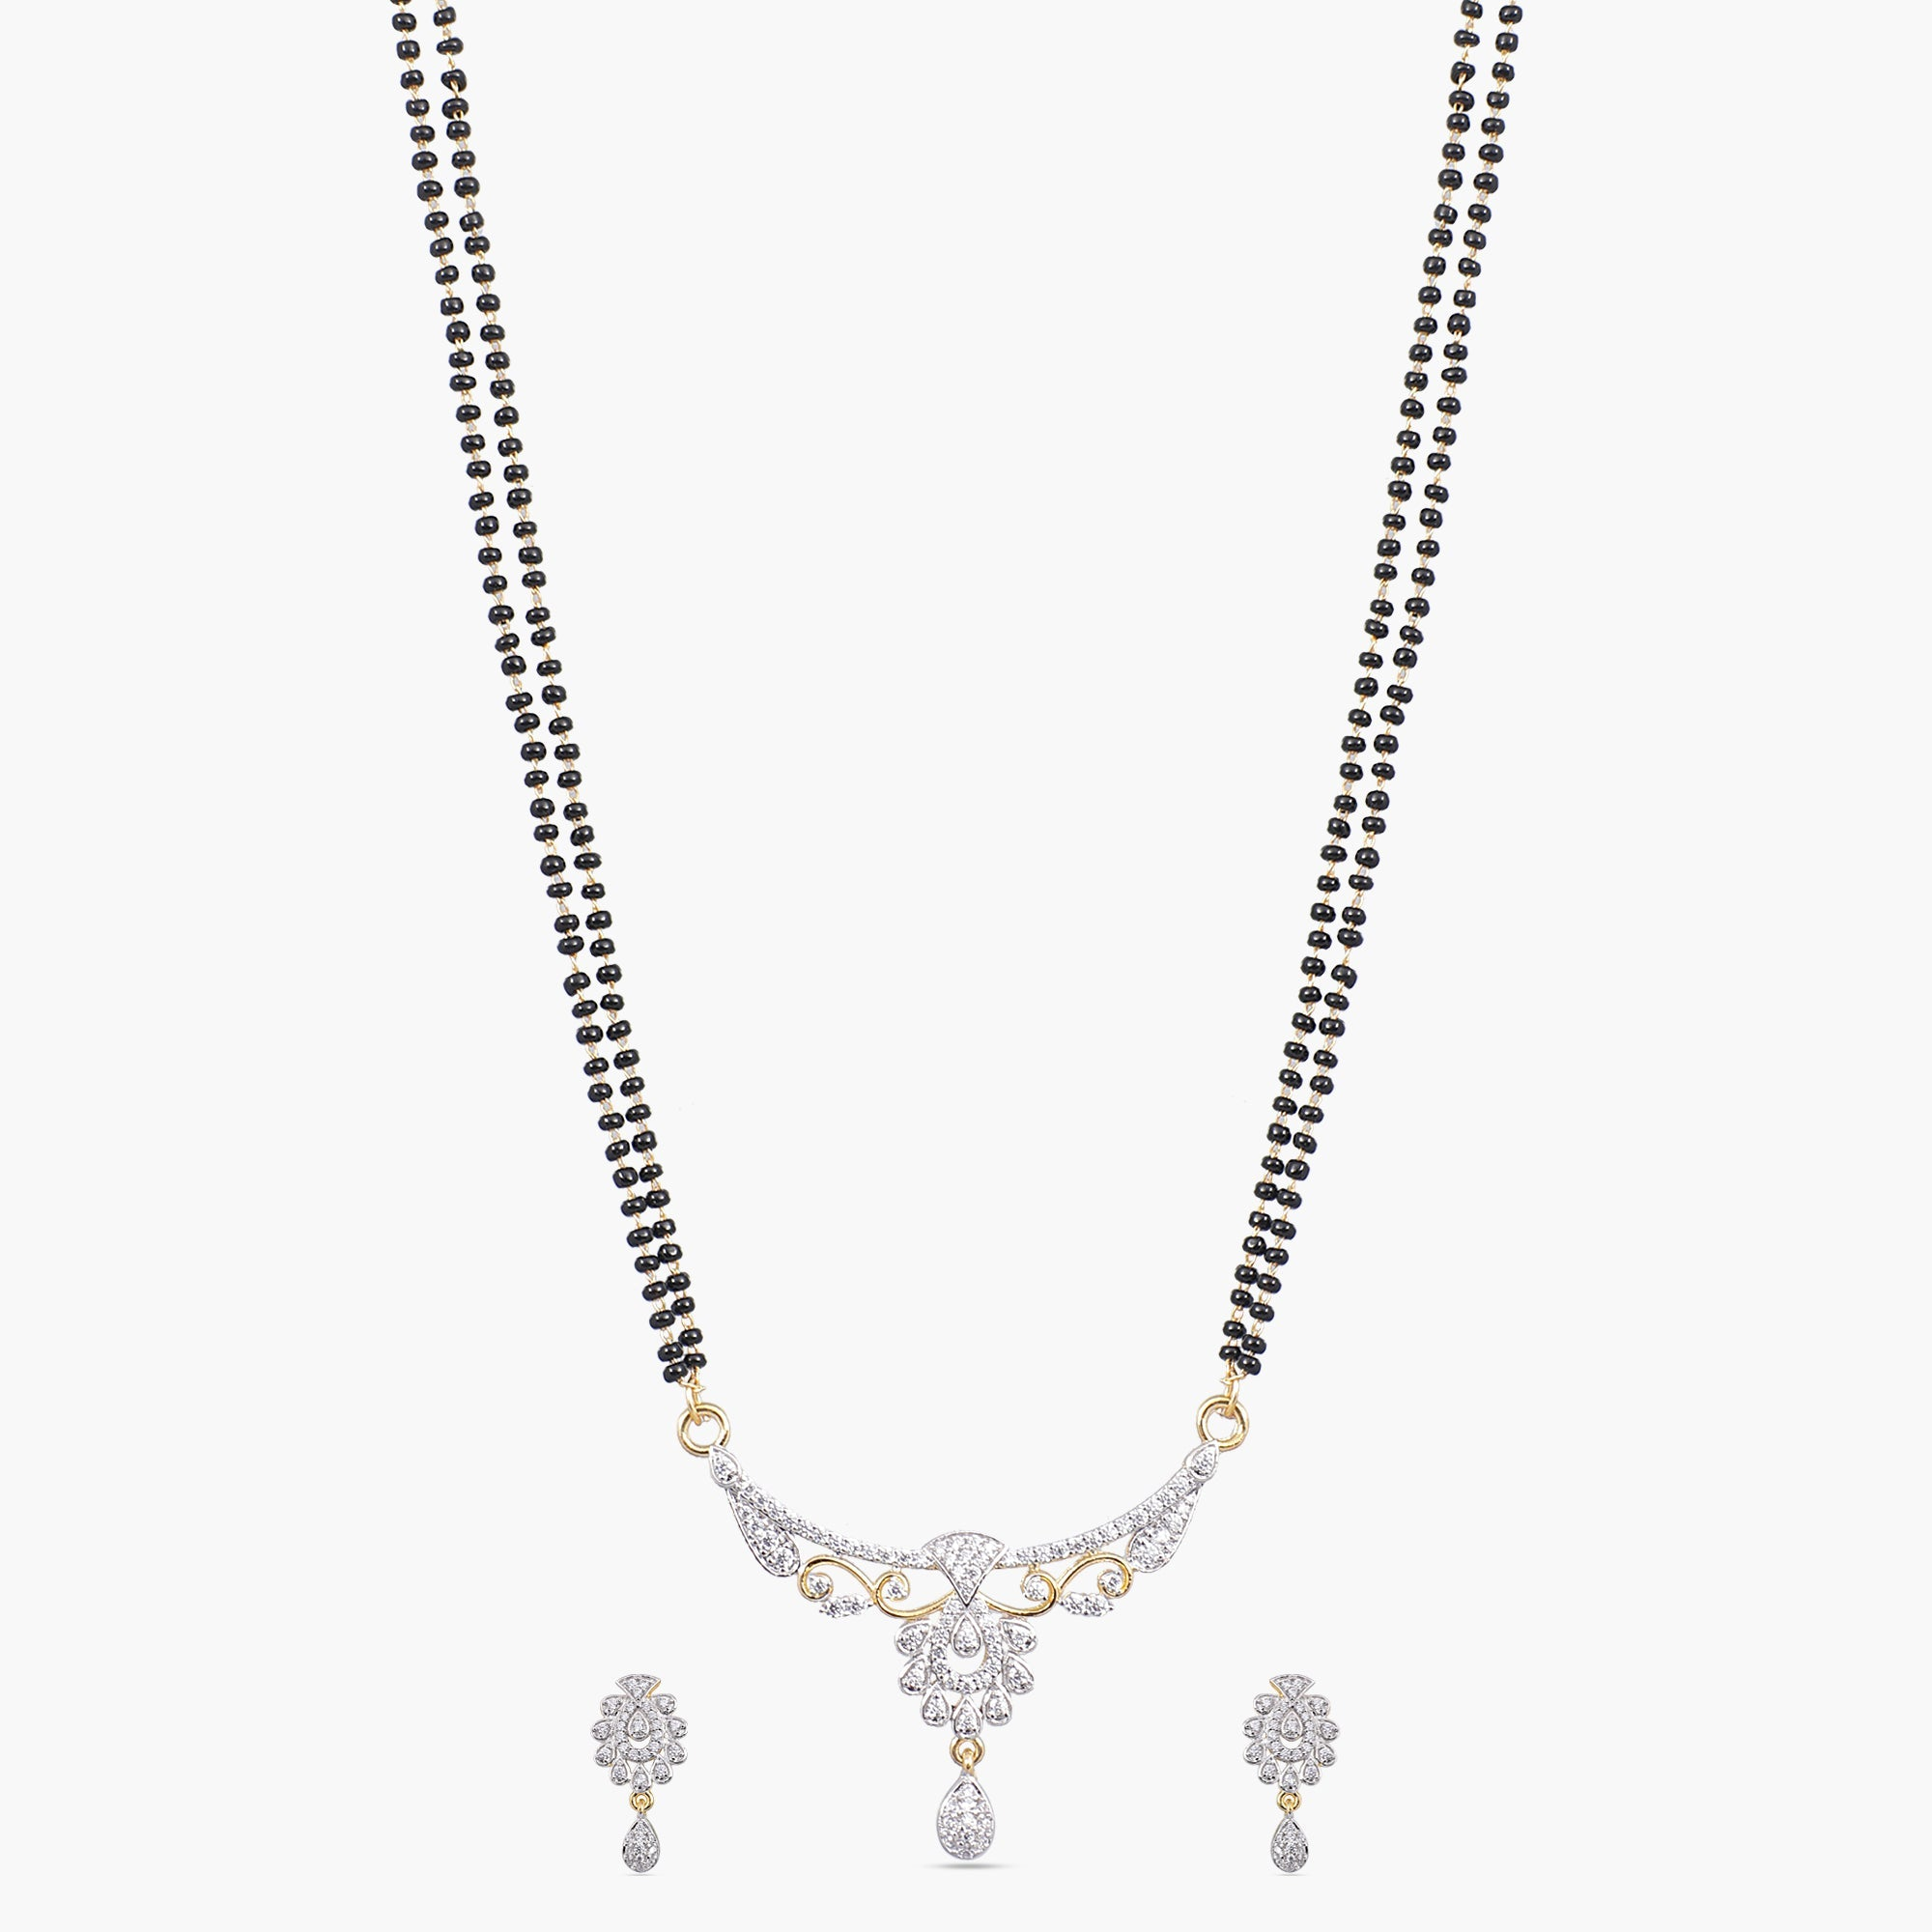 Risva Nakshatra CZ Black Beads Necklace Set